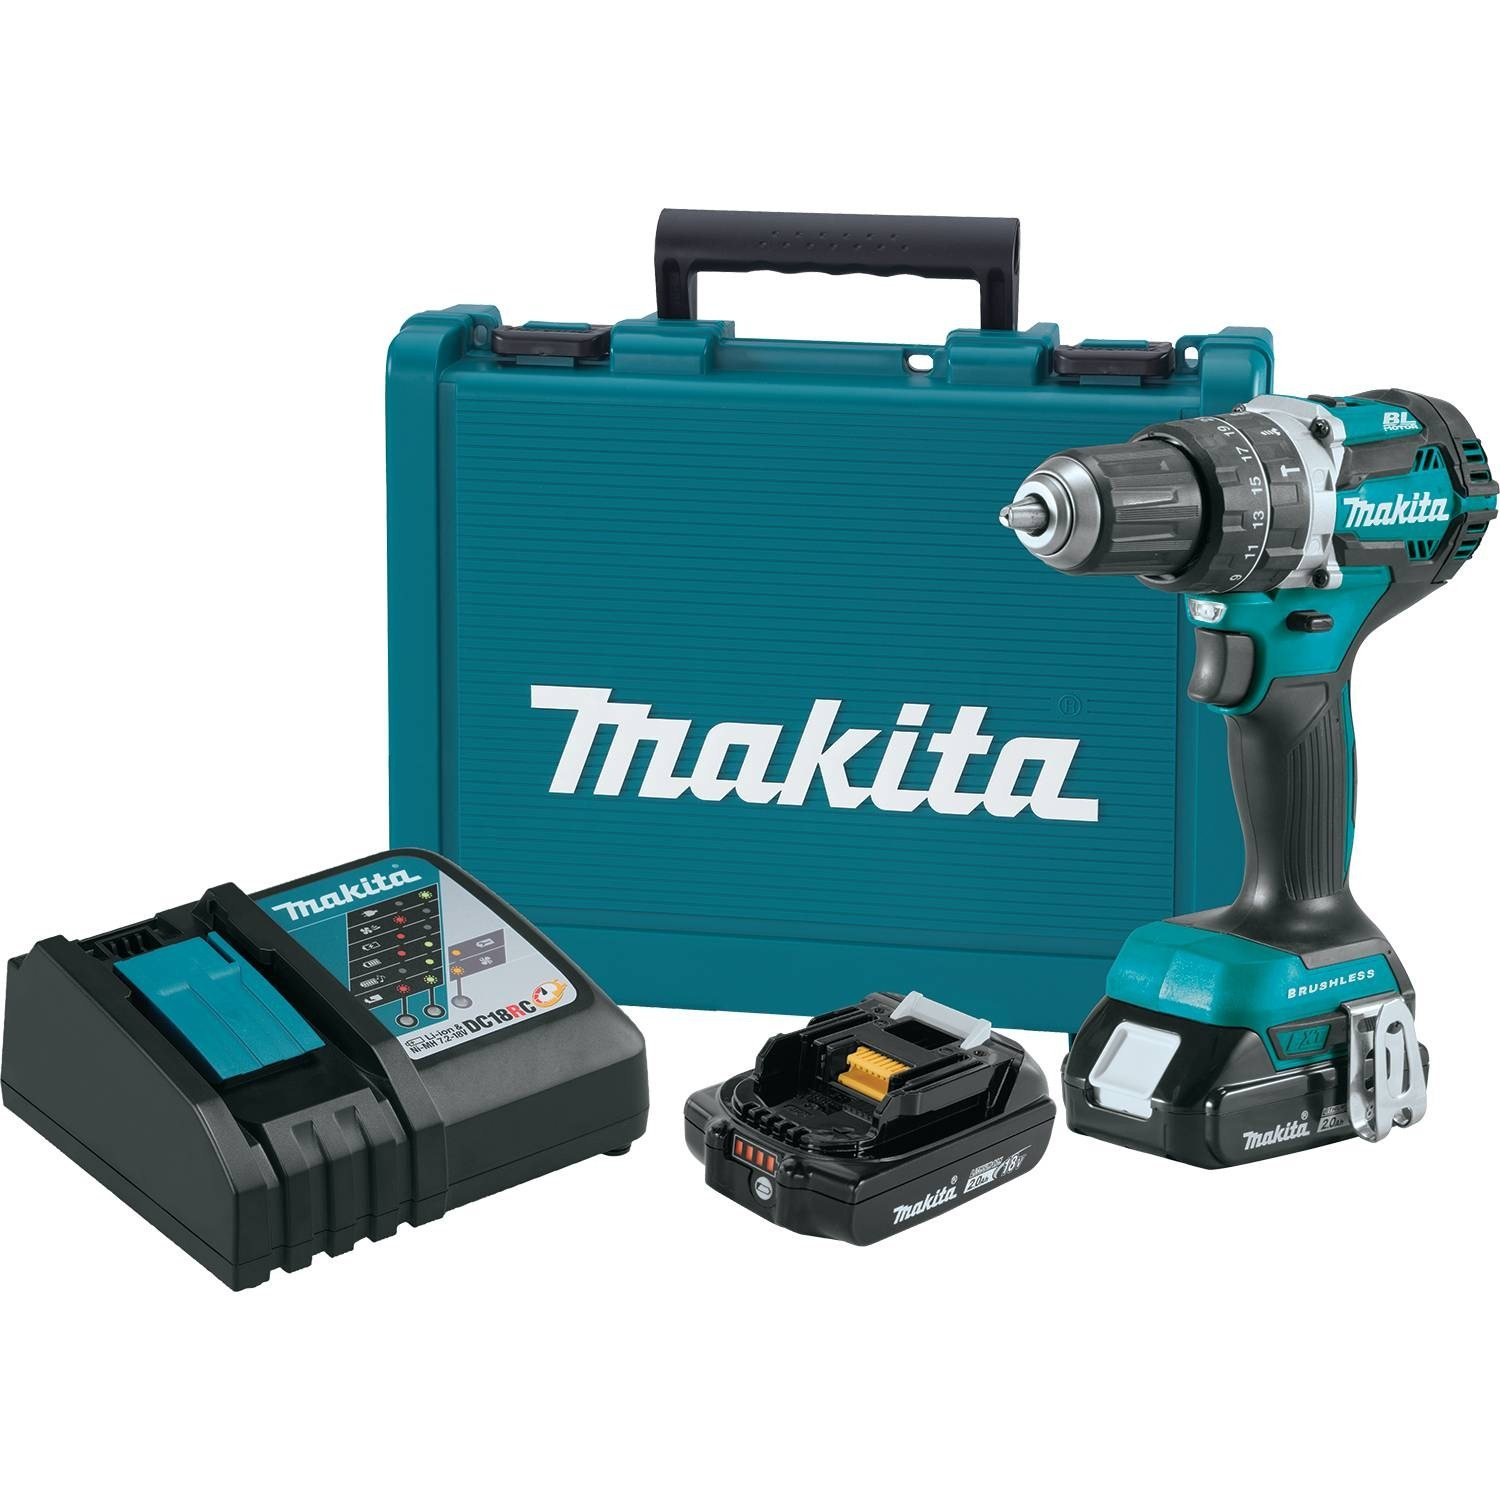 Makita Xph12r 18v Lxt Lithium Ion Compact Brushless